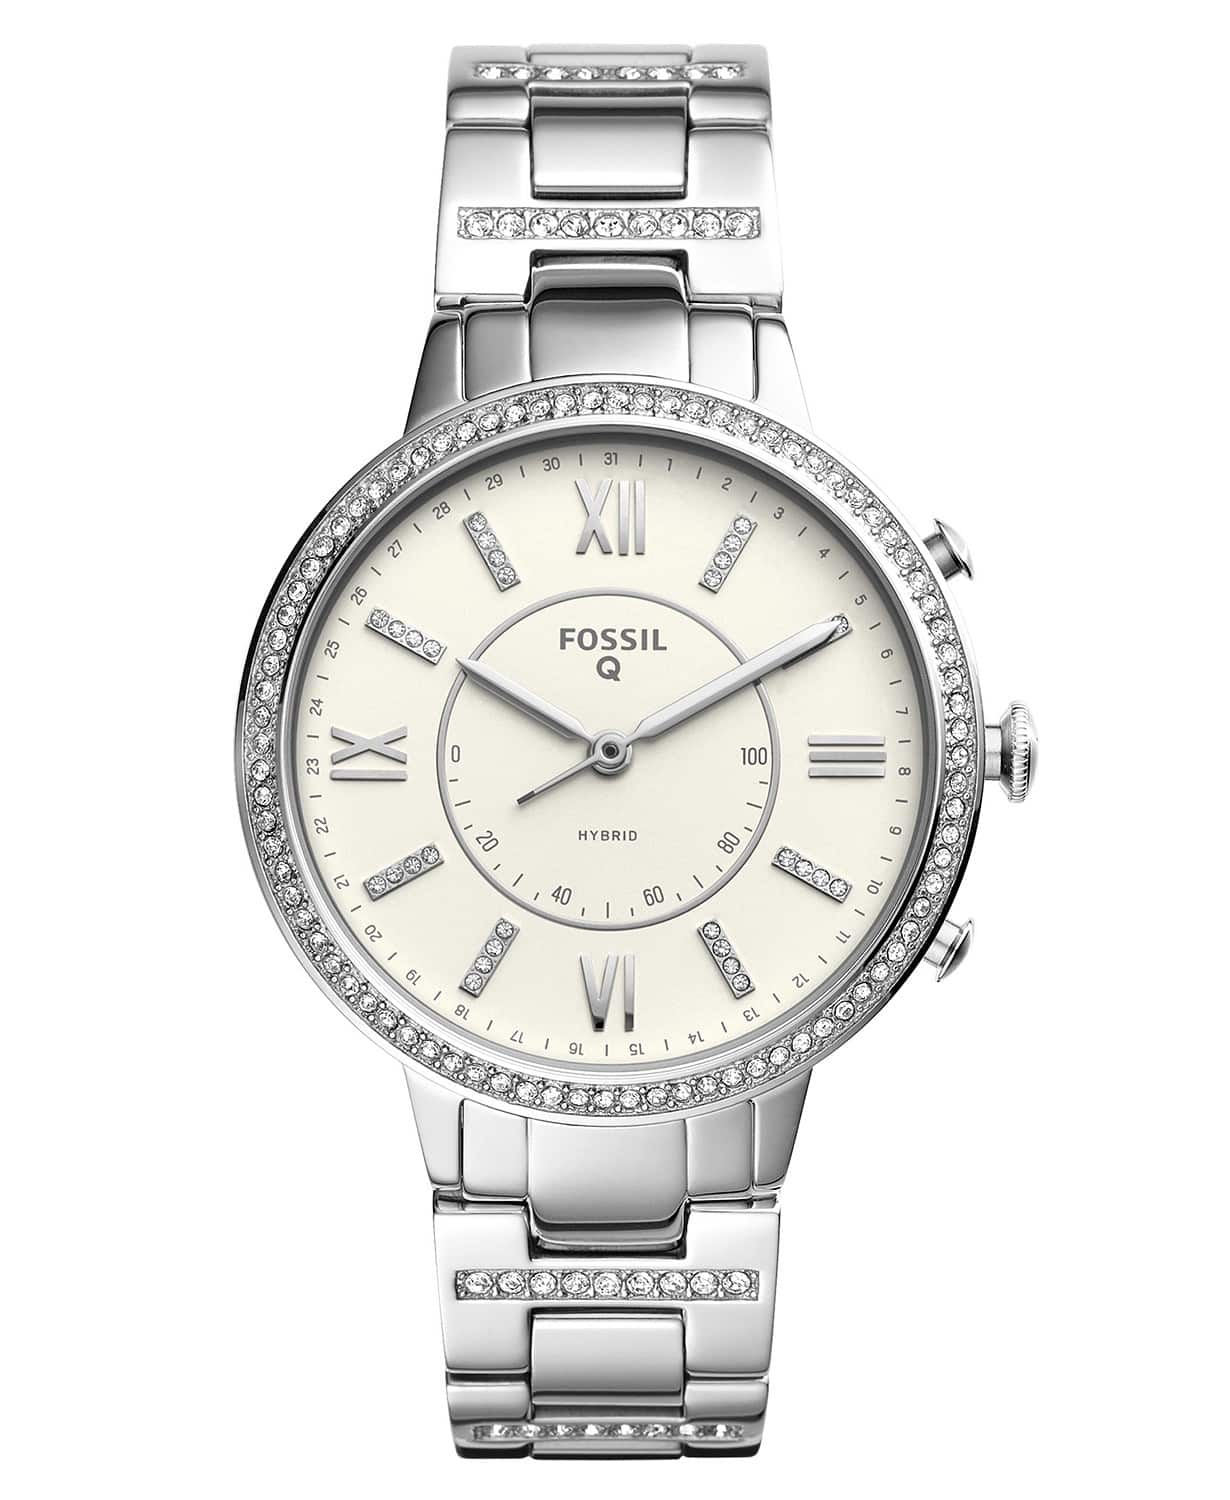 Fossil Q Hybrid Smartwatches Women S Virginia 36mm Stainless Steel